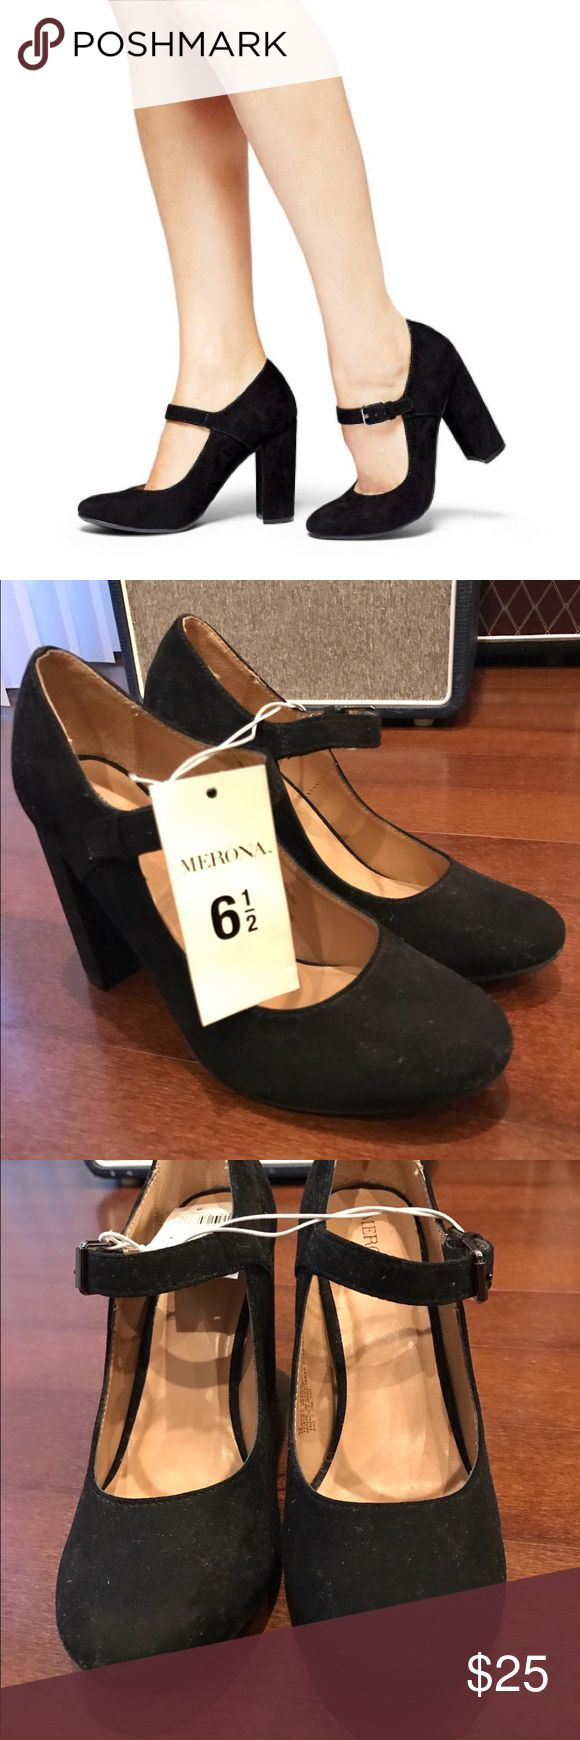 ✨✨ NWT • Women's Mary Jane Heels NWT • Women's Mary Jane Chubky Heels in black suede. Timeless classic! Goes great with anything. I got these as a gift but already have a pair just like it. I wear mine out all the time! Shoes Heels